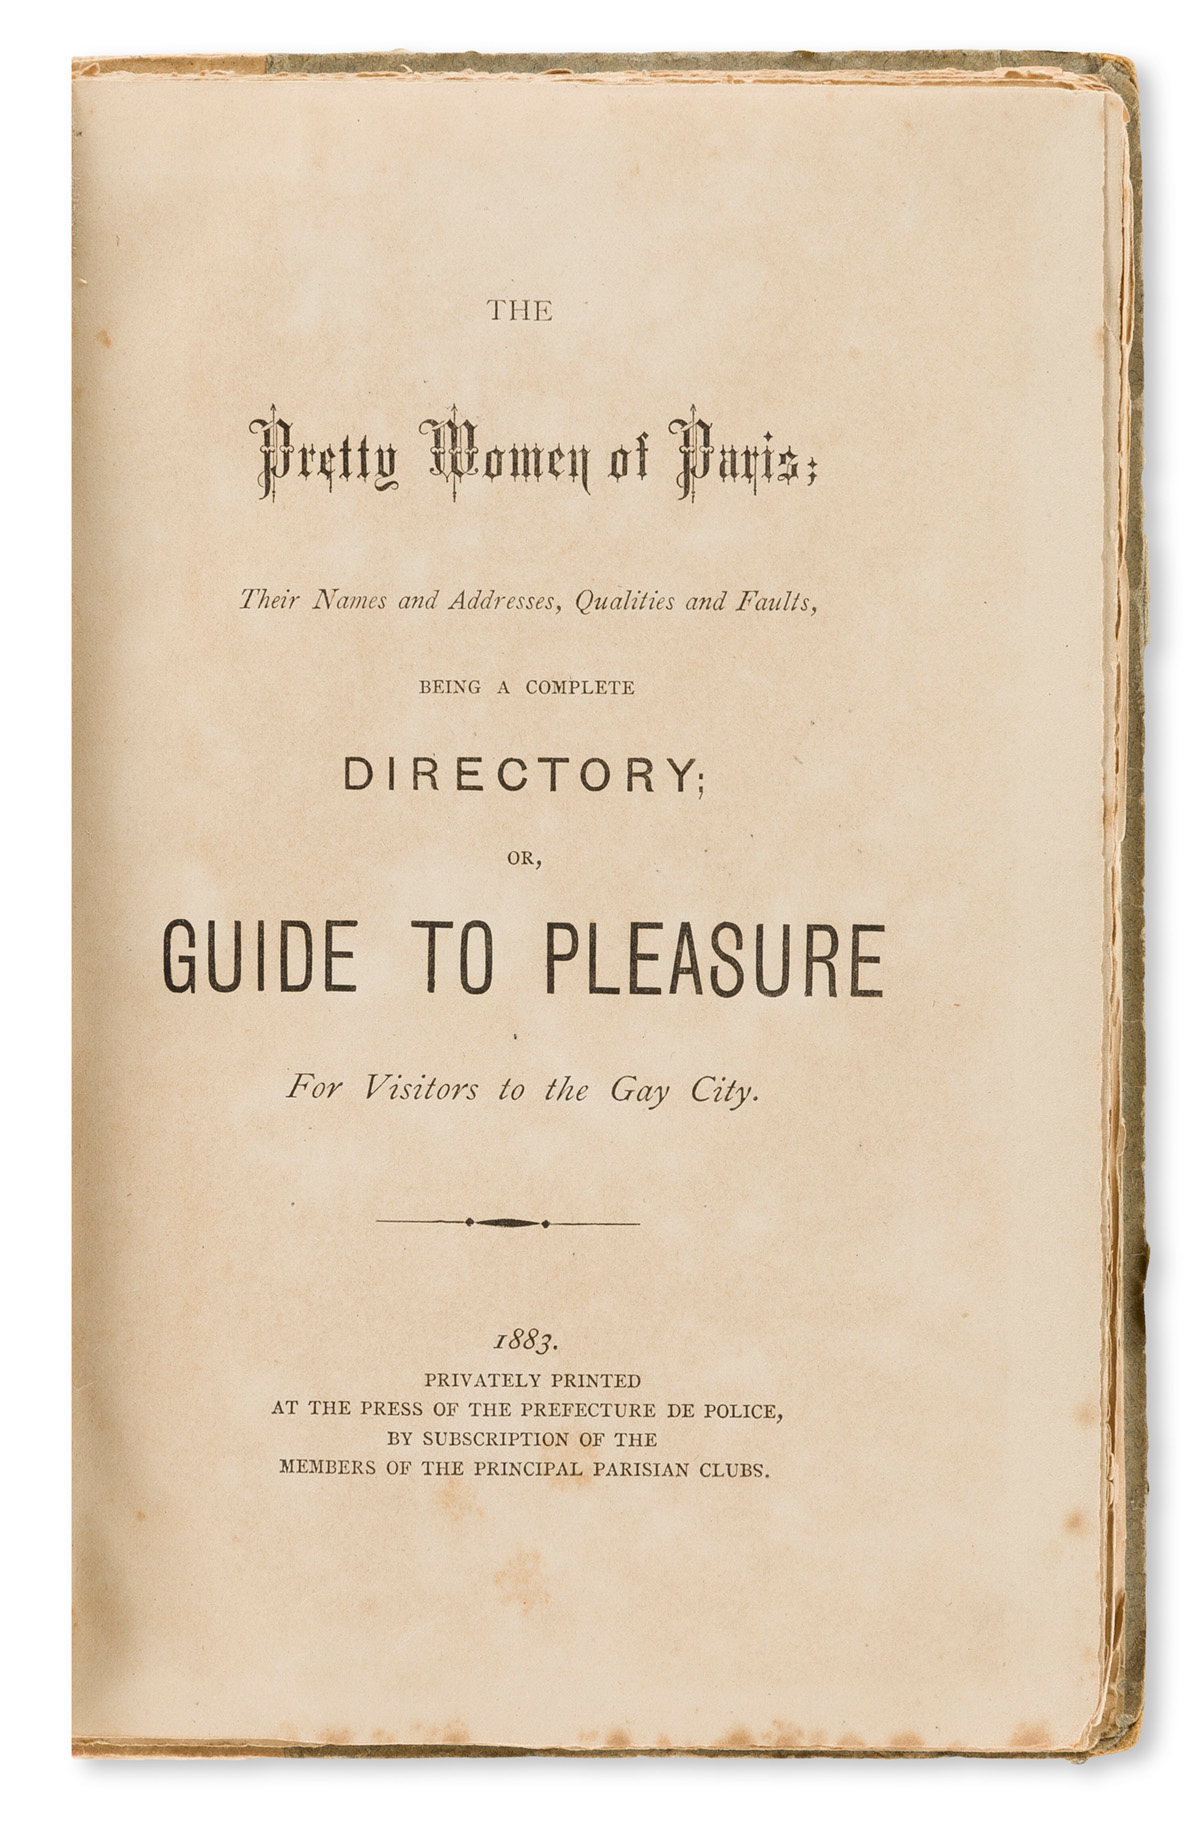 The Pretty Women of Paris: their Names and Address, Qualities and Faults, Being a Complete Directory; or Guide to Pleasure for Visitors